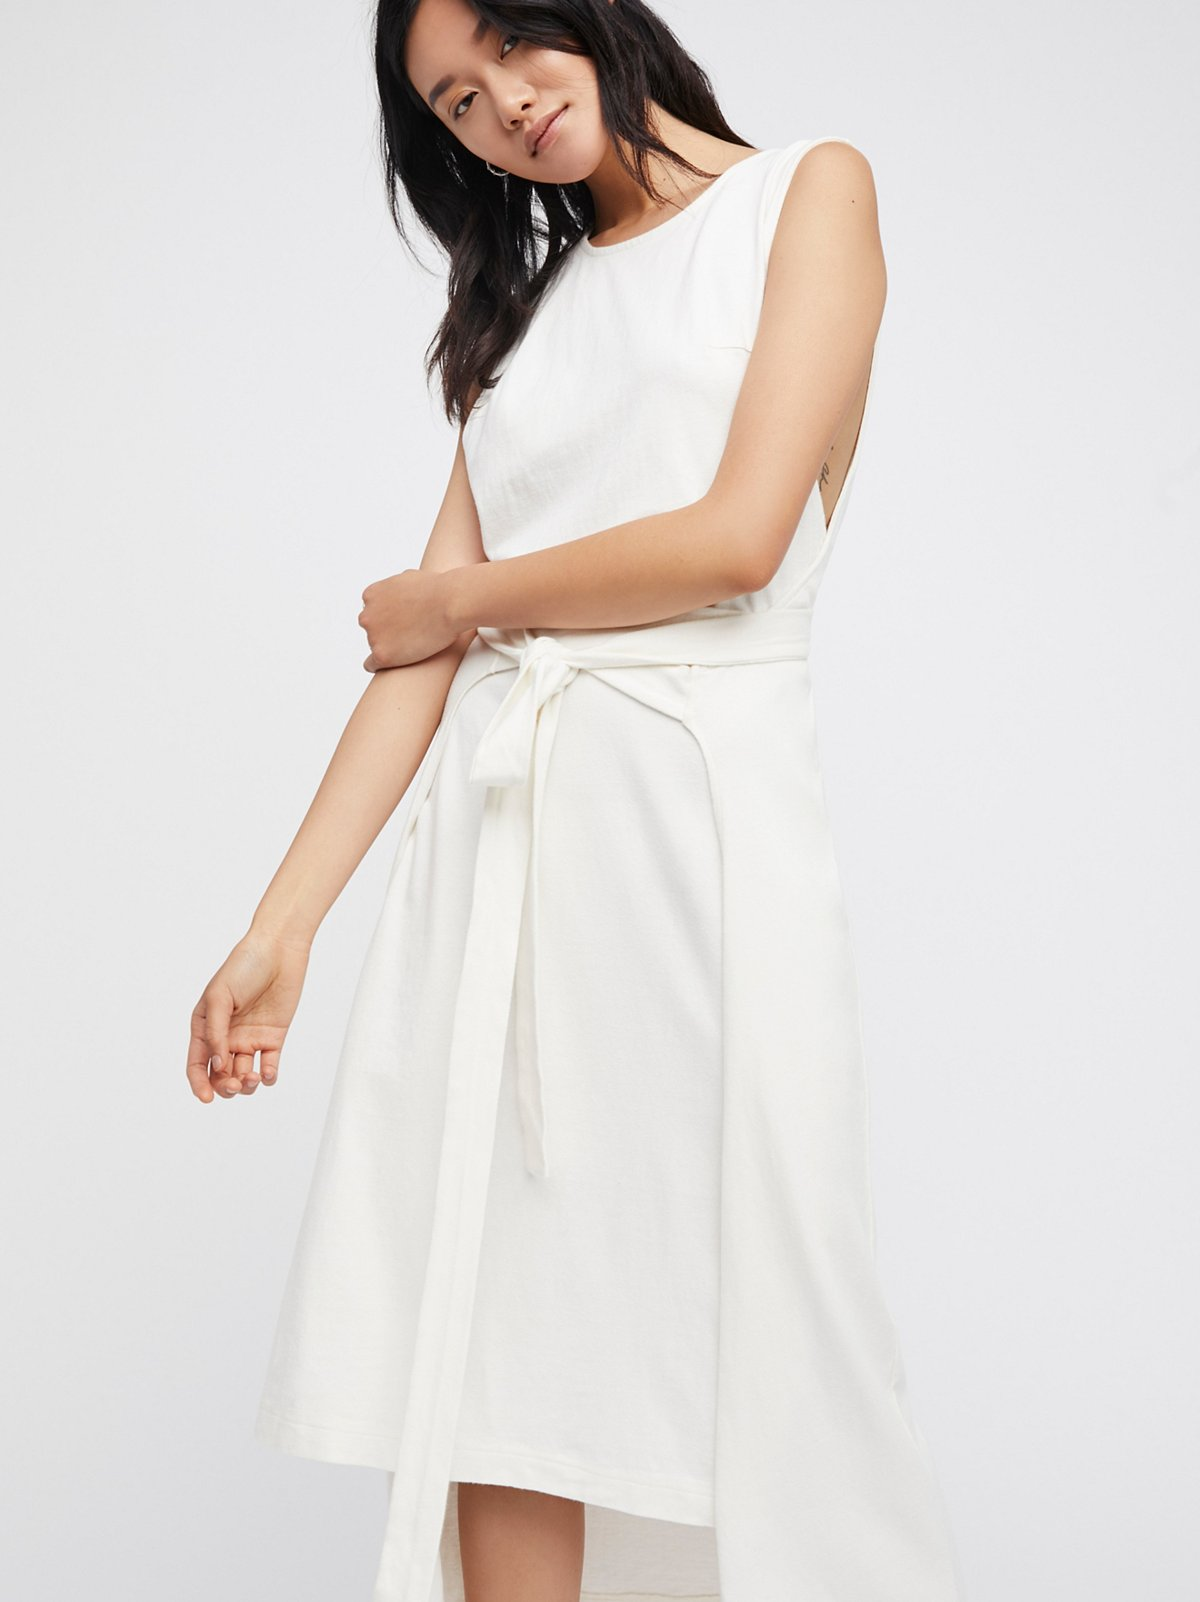 Roll With It Maxi Dress